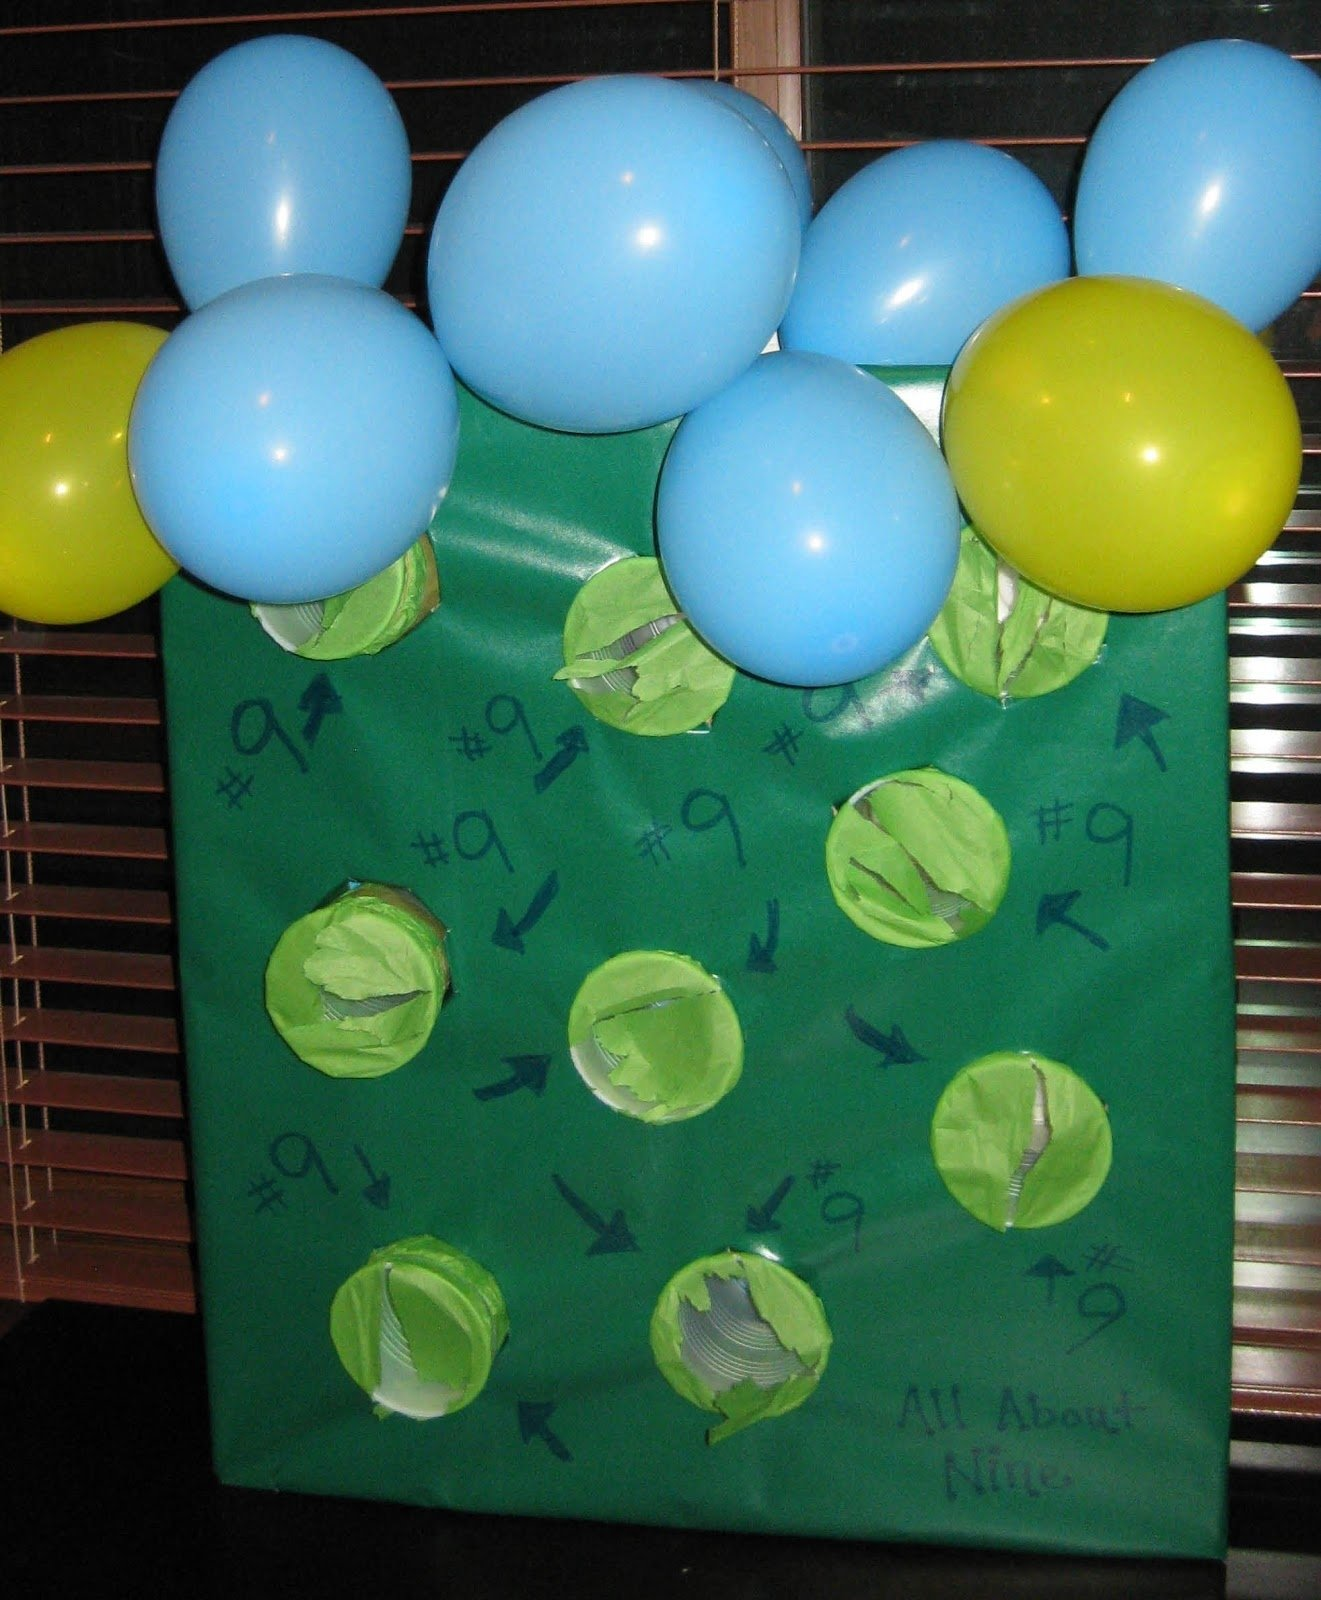 10 Great Birthday Party Ideas For Girls Age 6 lovenloot birthday party idea for nine year old girl 2020